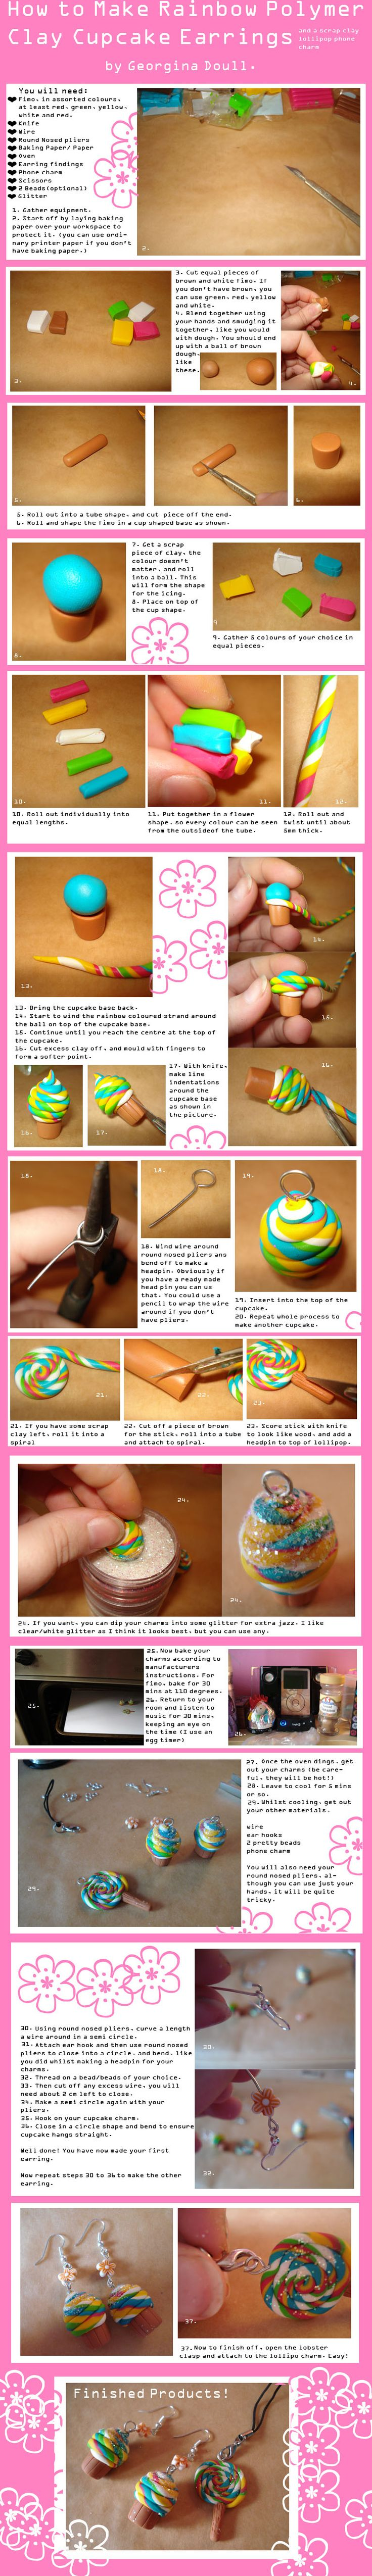 How to make Cupcake Earrings-tutorial - POTTERY, CERAMICS, POLYMER CLAY